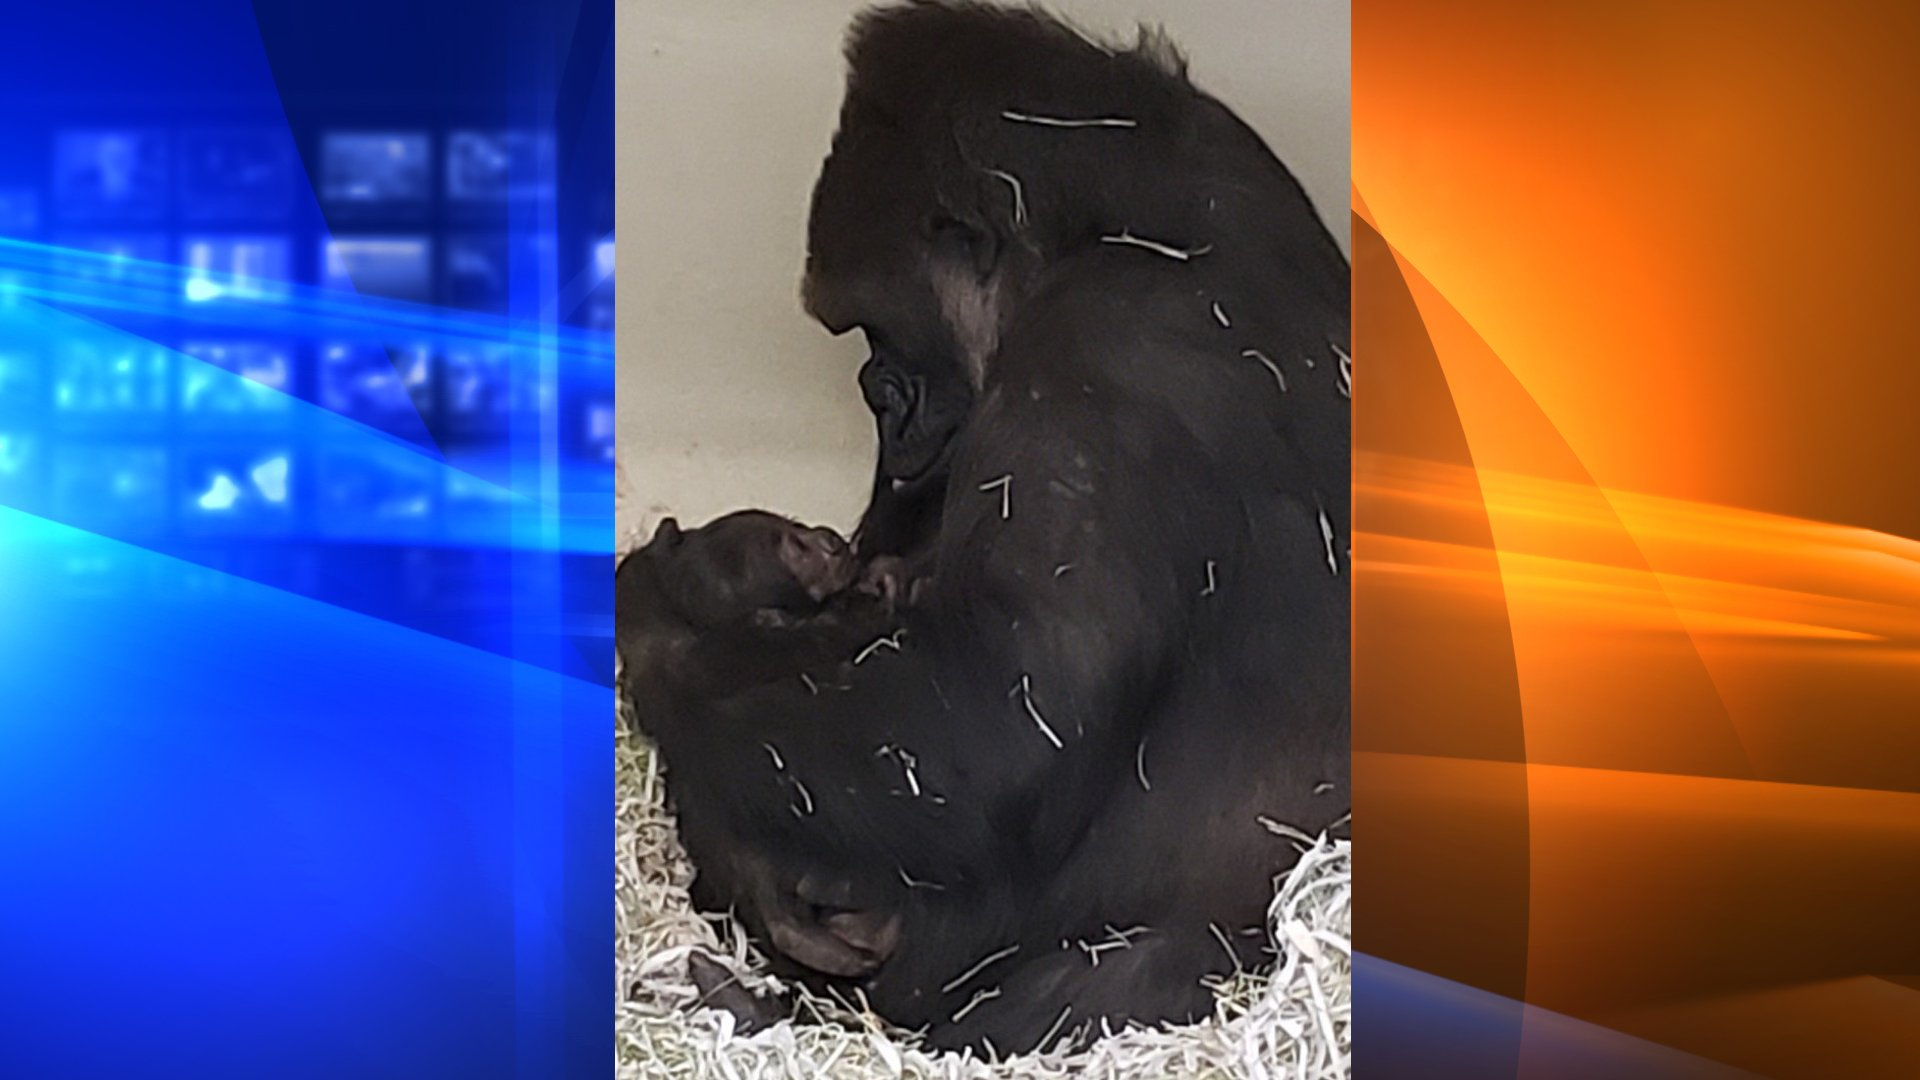 N'djia and her new baby bond in a photo released by the L.A. Zoo on Jan. 19, 2020.